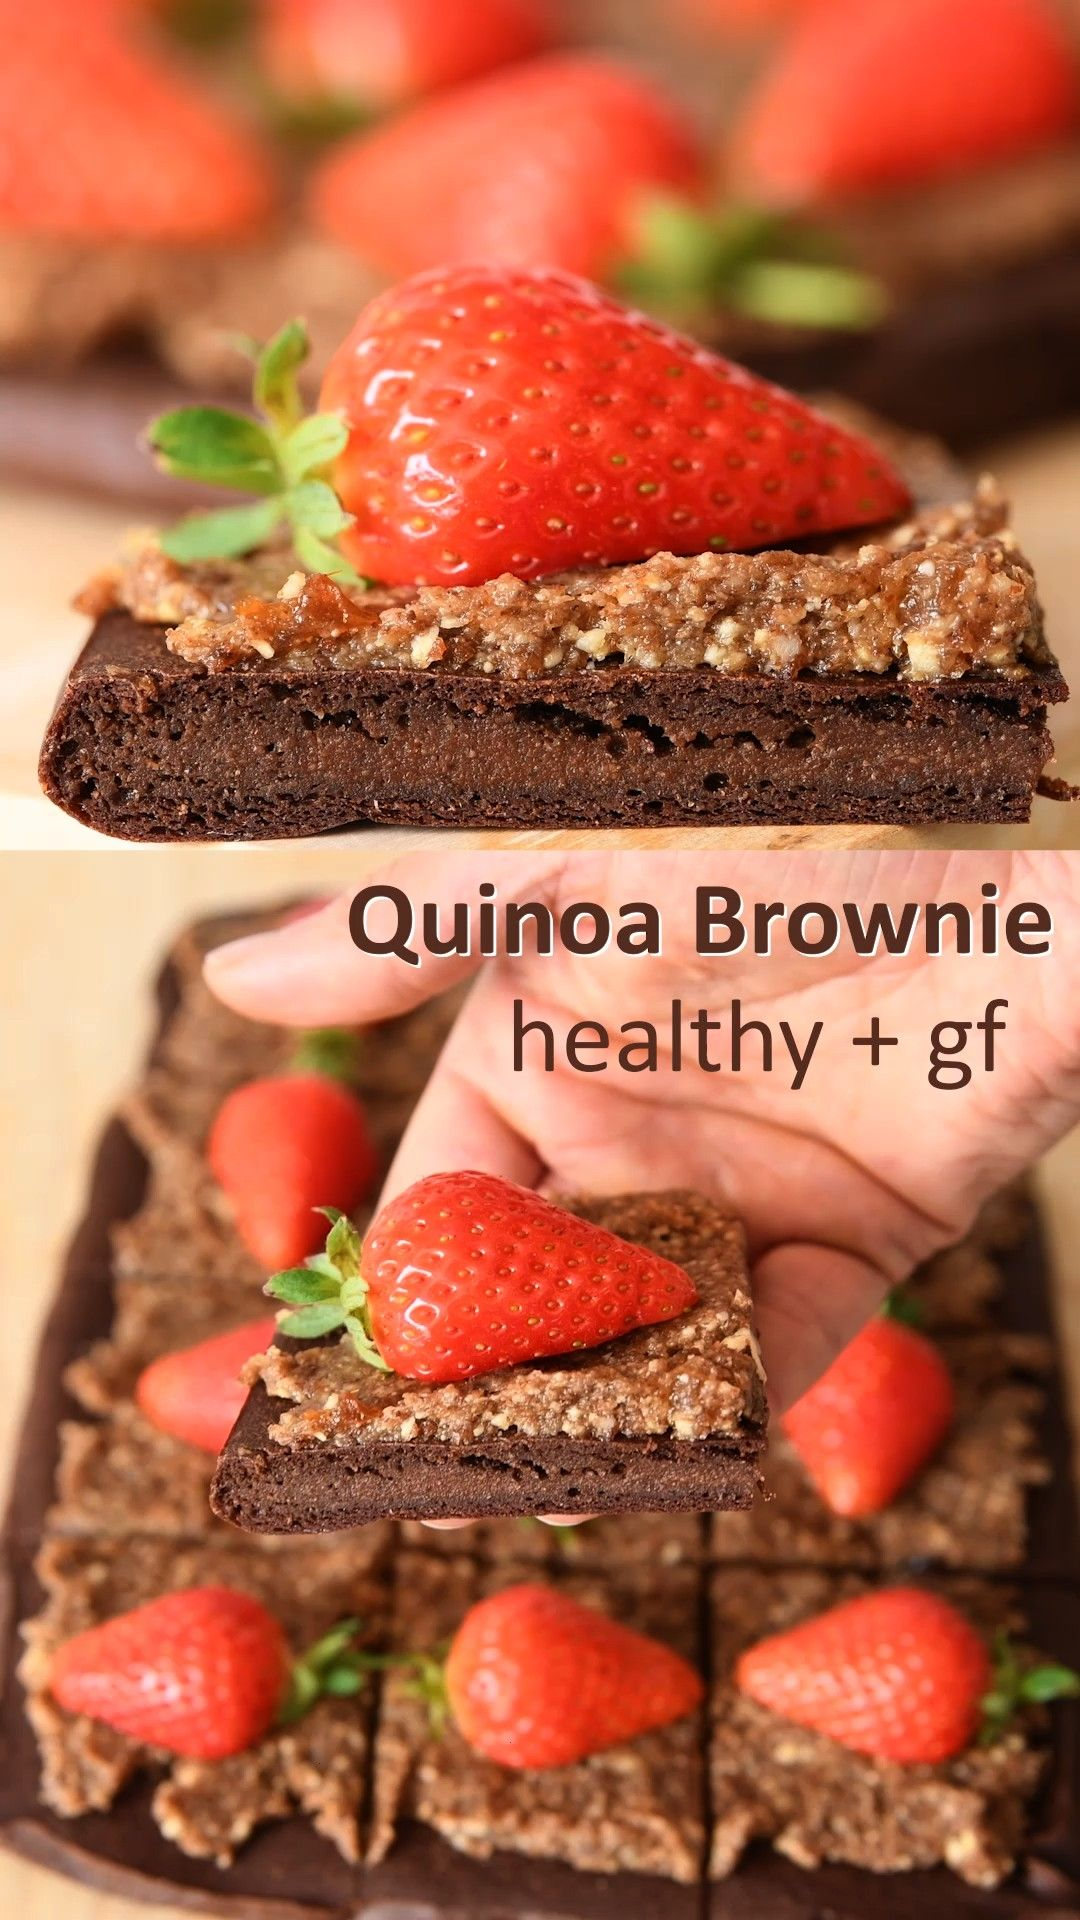 Chocolate Brownie - 4 Ingredients -  Healthy quinoa brownies that are high in protein with no sugar